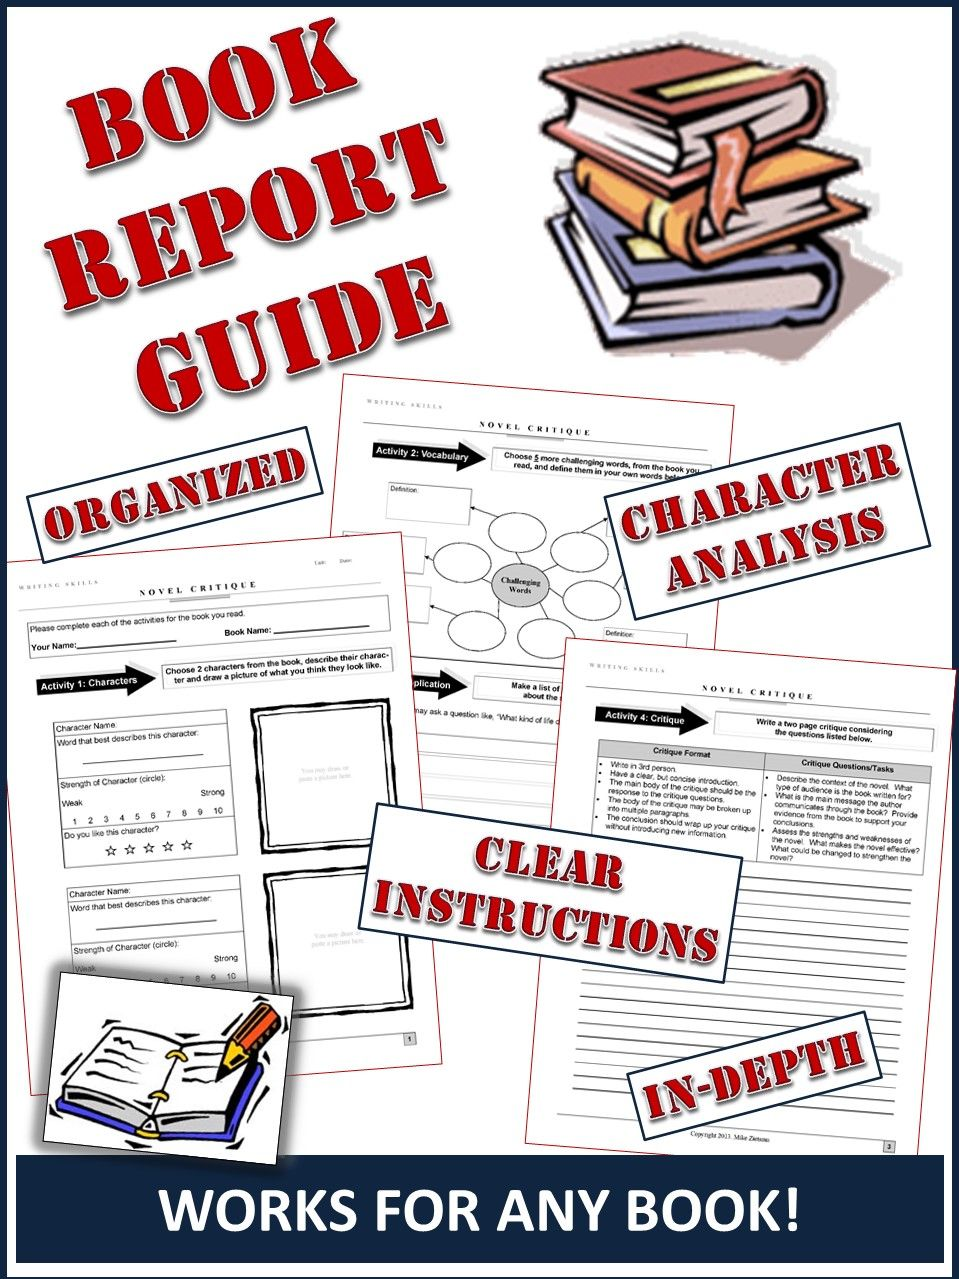 Book Report Template A Clear StepByStep Guide For Any Class